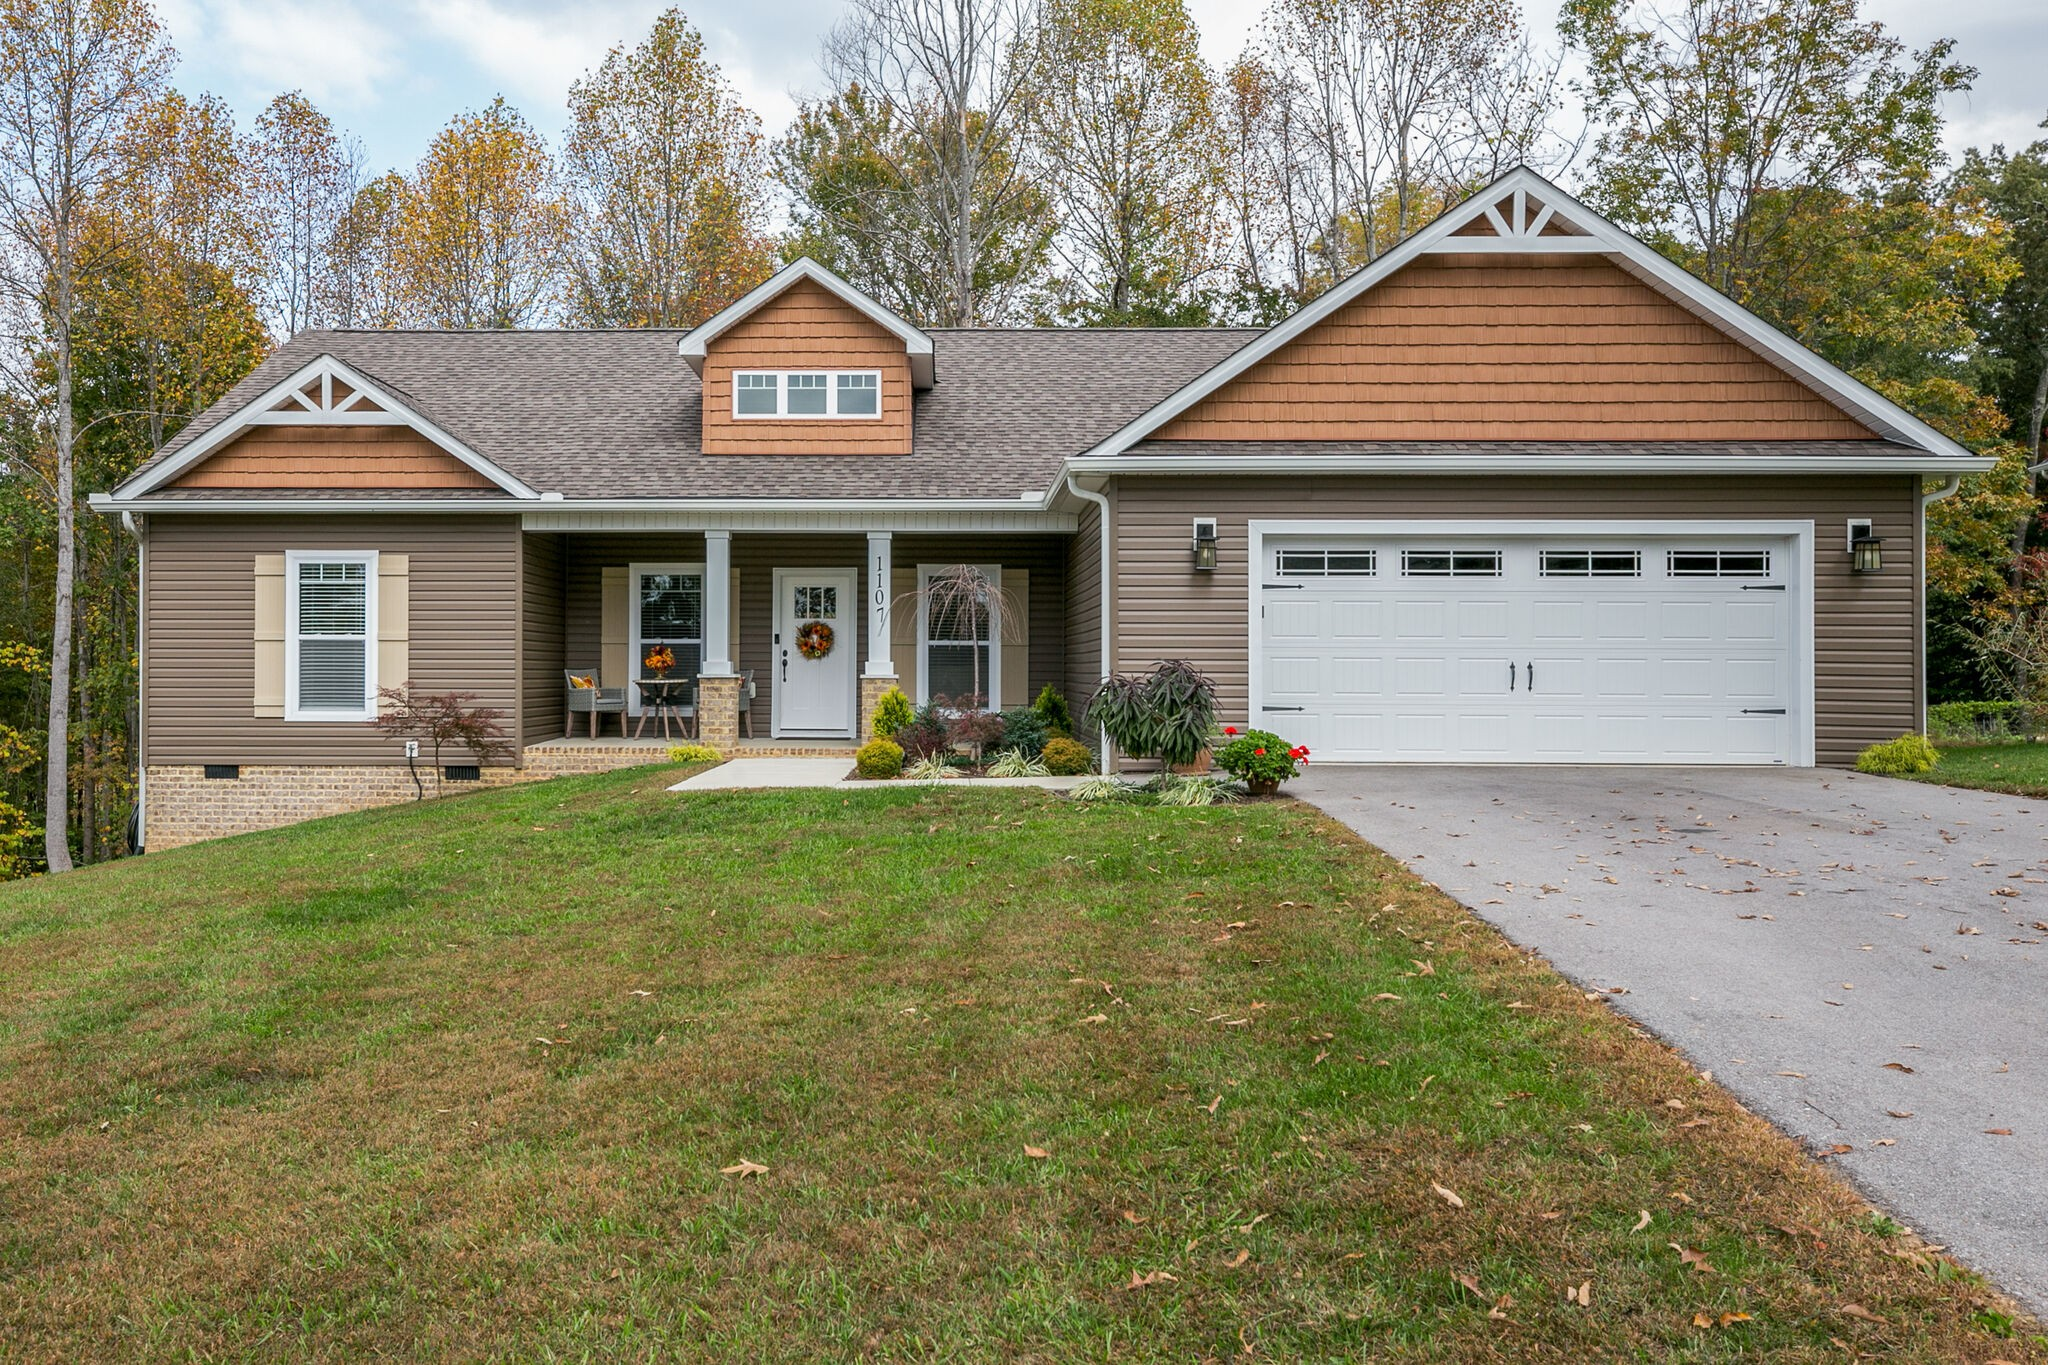 1107 W Cemetery Rd Property Photo - Cookeville, TN real estate listing